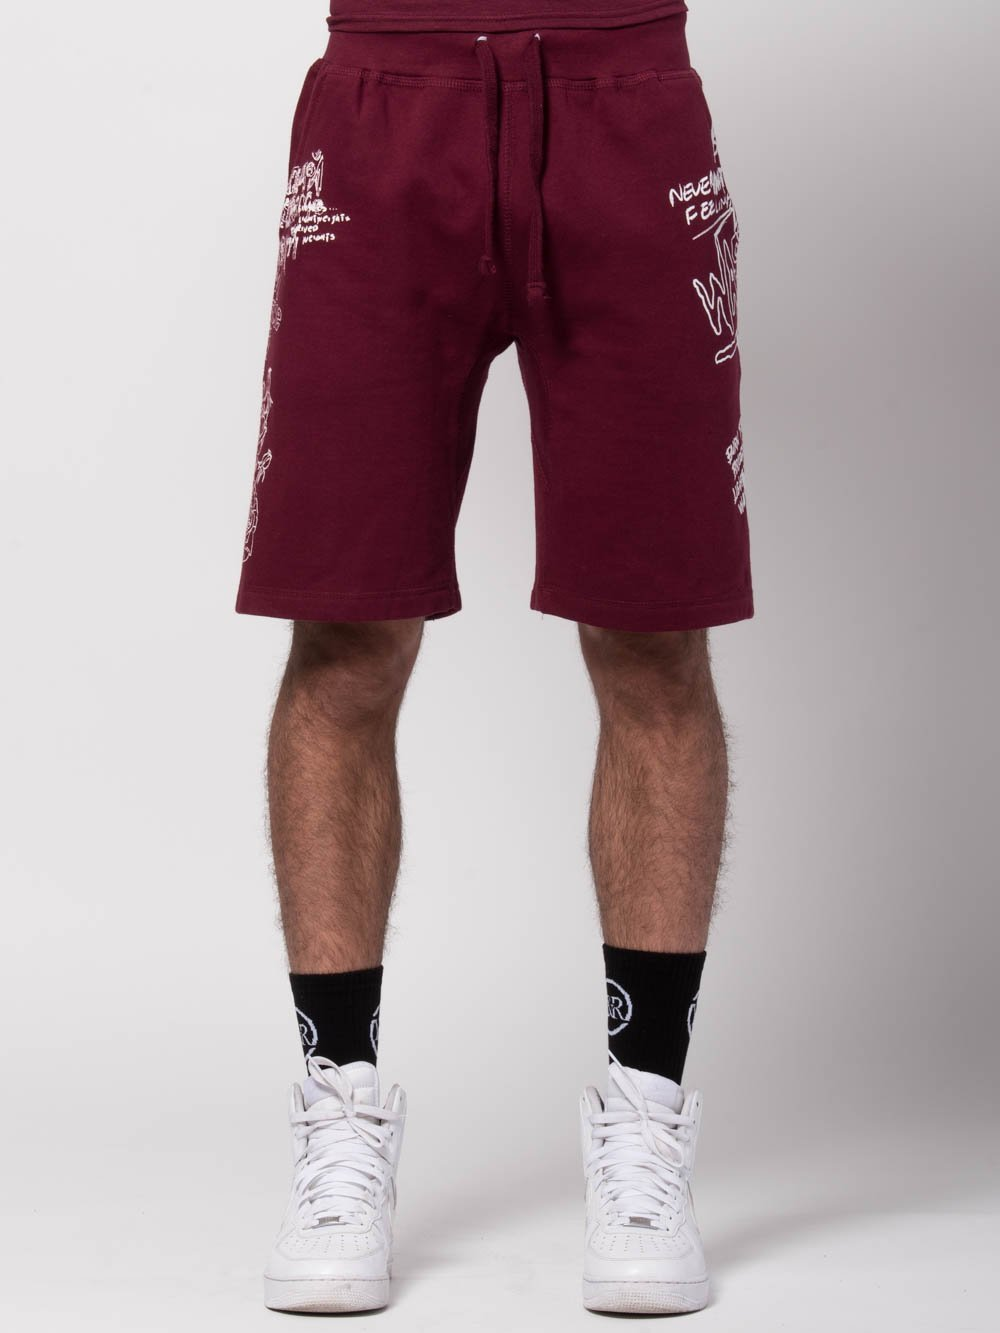 4c4991c7 Young and Reckless Mens - Bottoms - Sweatpants Griffon Sweatshorts -  Burgundy